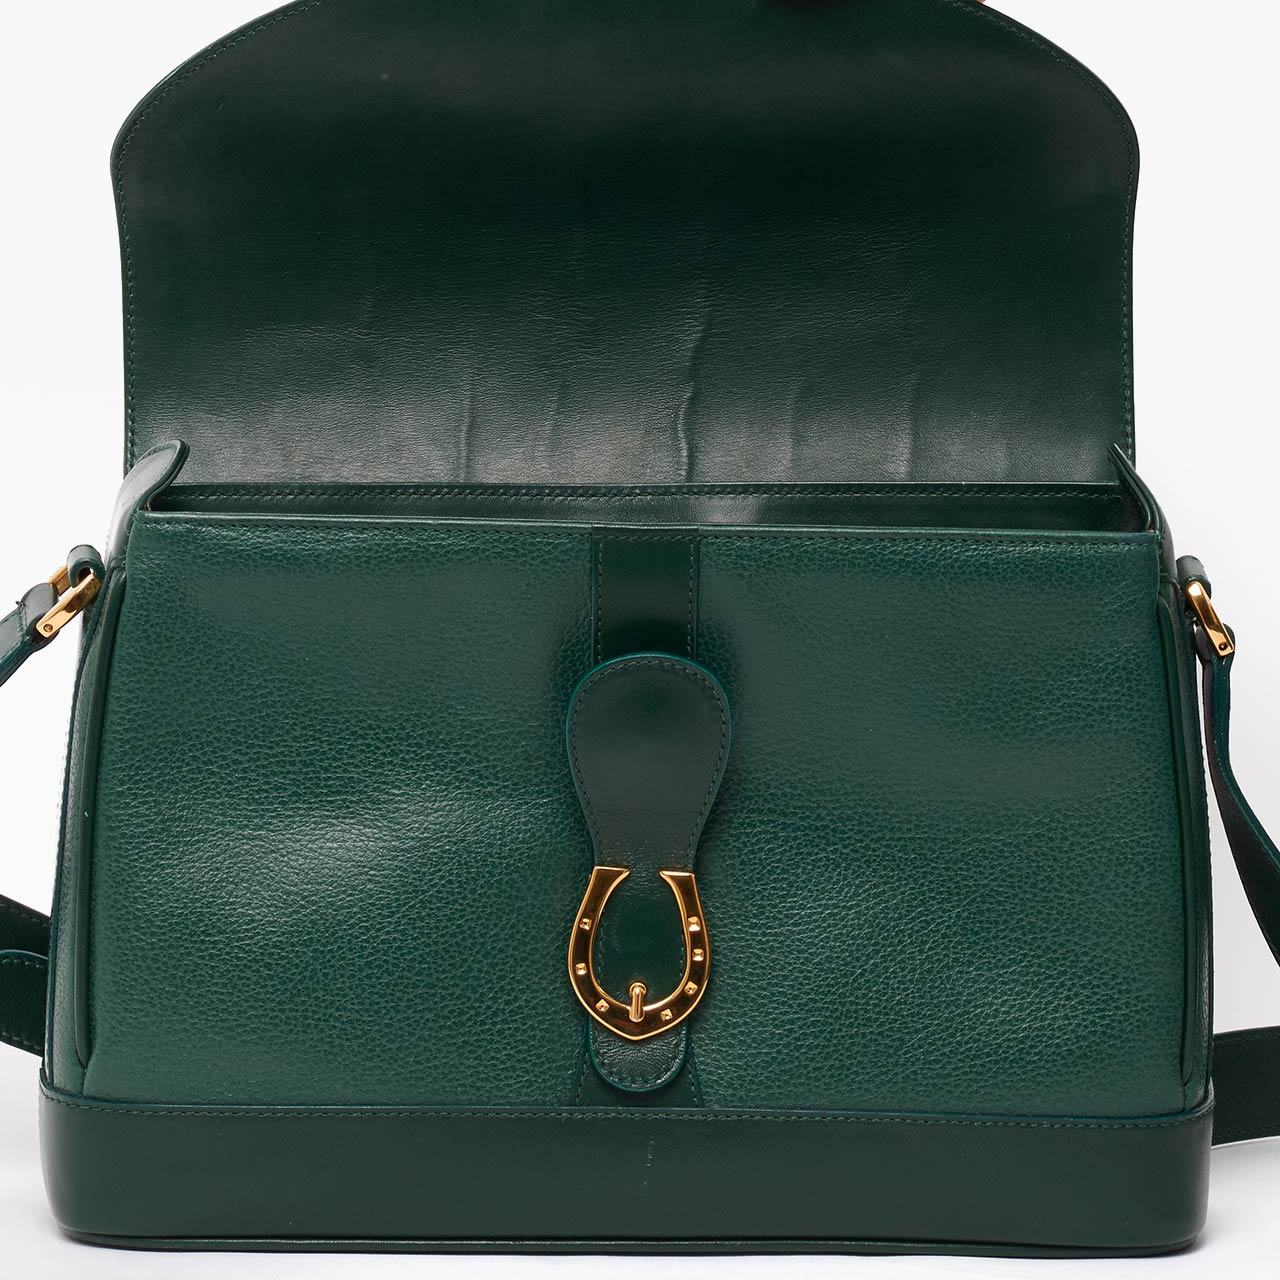 Vintage Gucci green leather saddle cross body bag